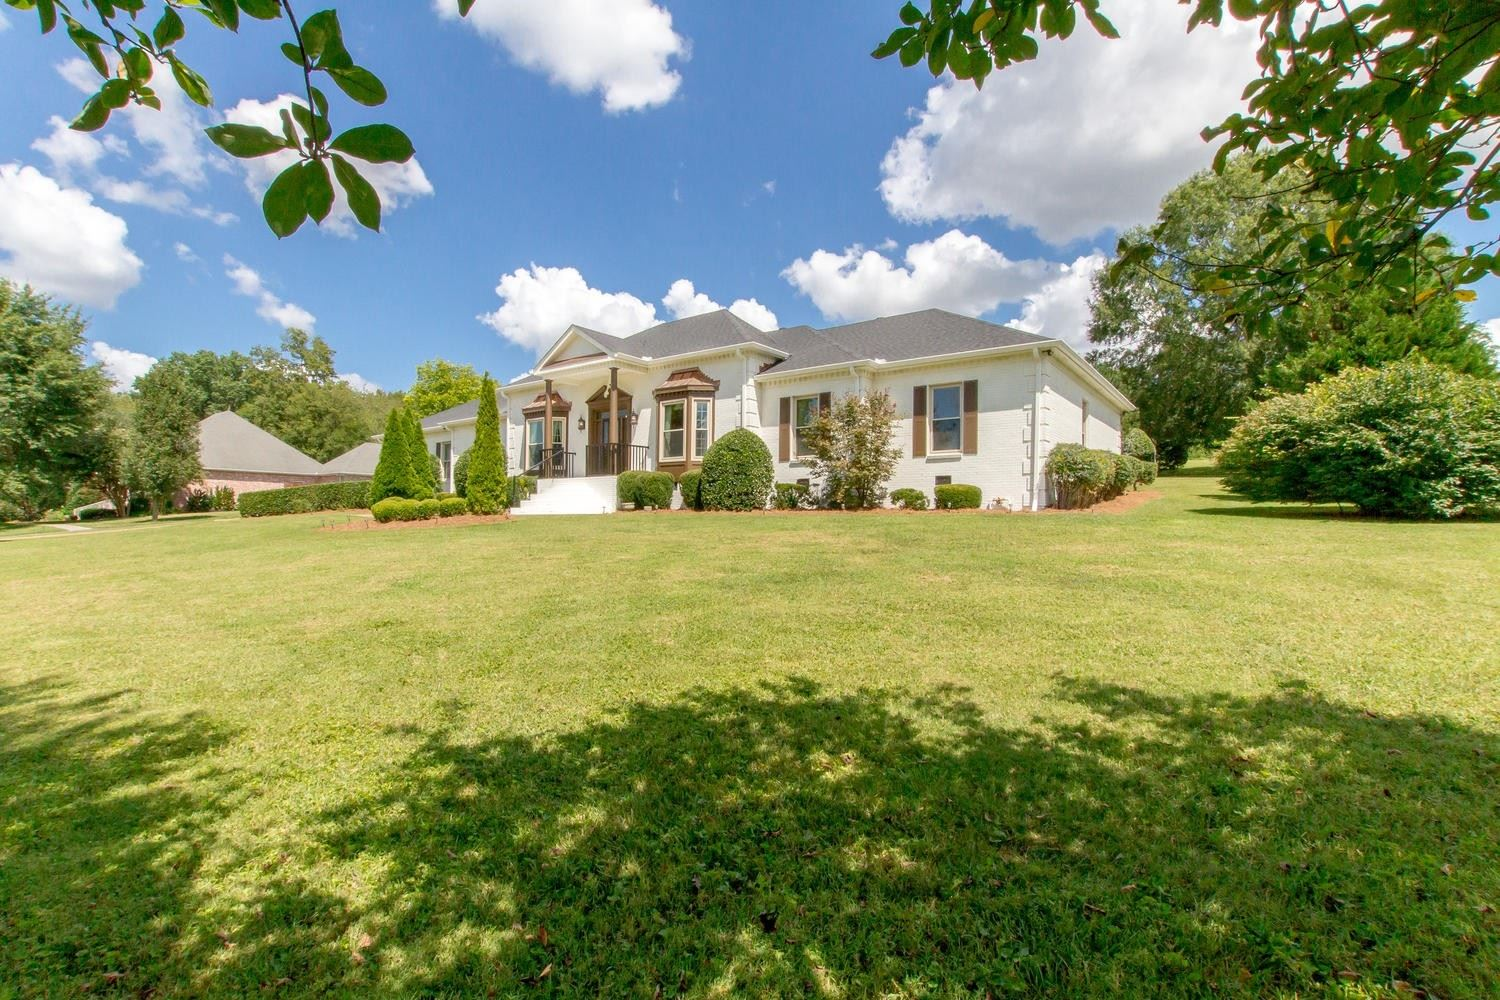 Photo of 1108 Warrior Dr, Franklin, TN 37064 (MLS # 2224892)